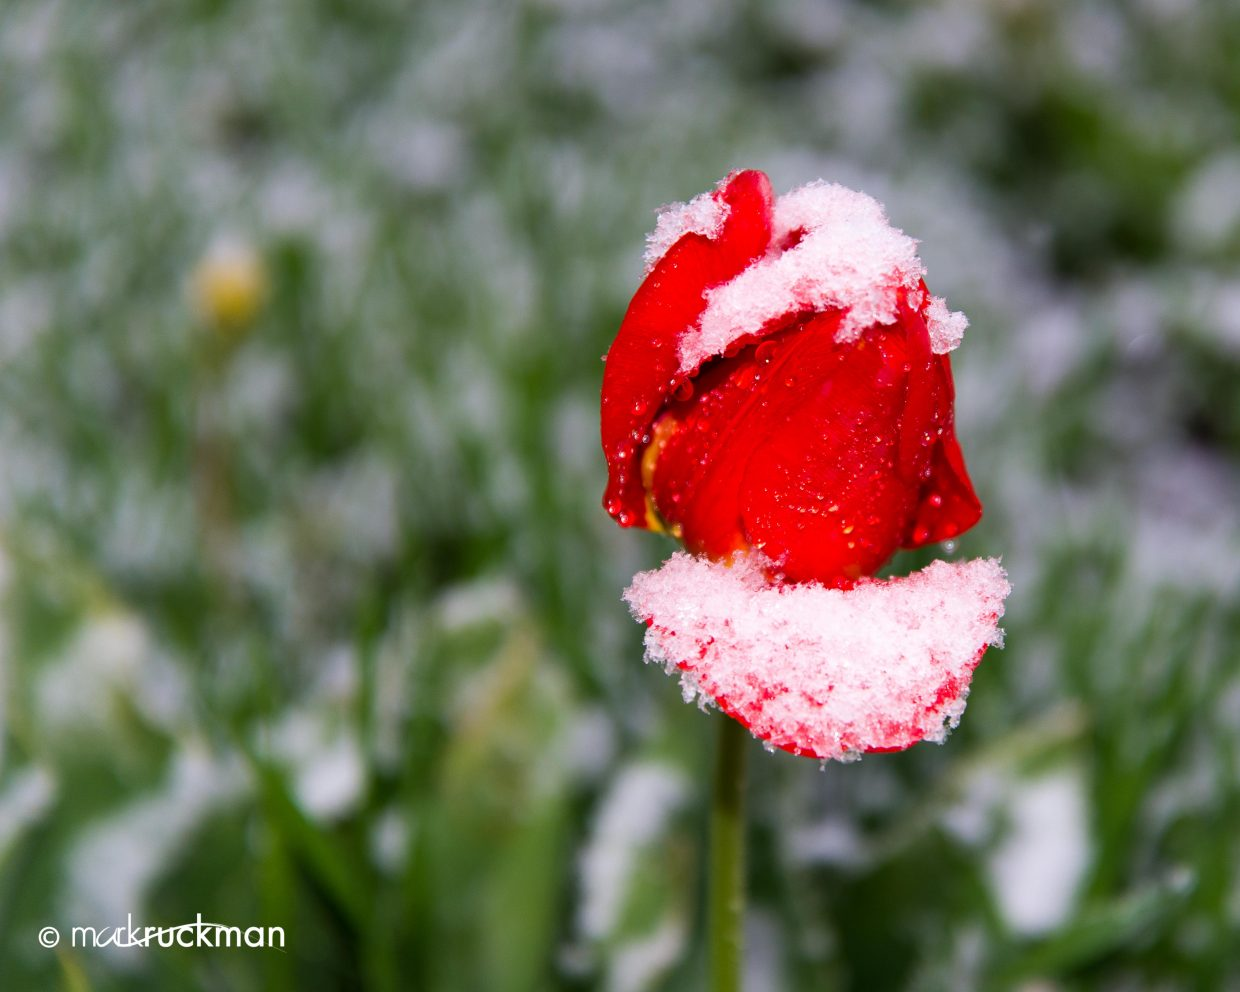 On Monday, we awoke to a nice little dusting of snow. This tulip is displaying the grand blending of winter and spring. Submitted by: Mark Ruckman